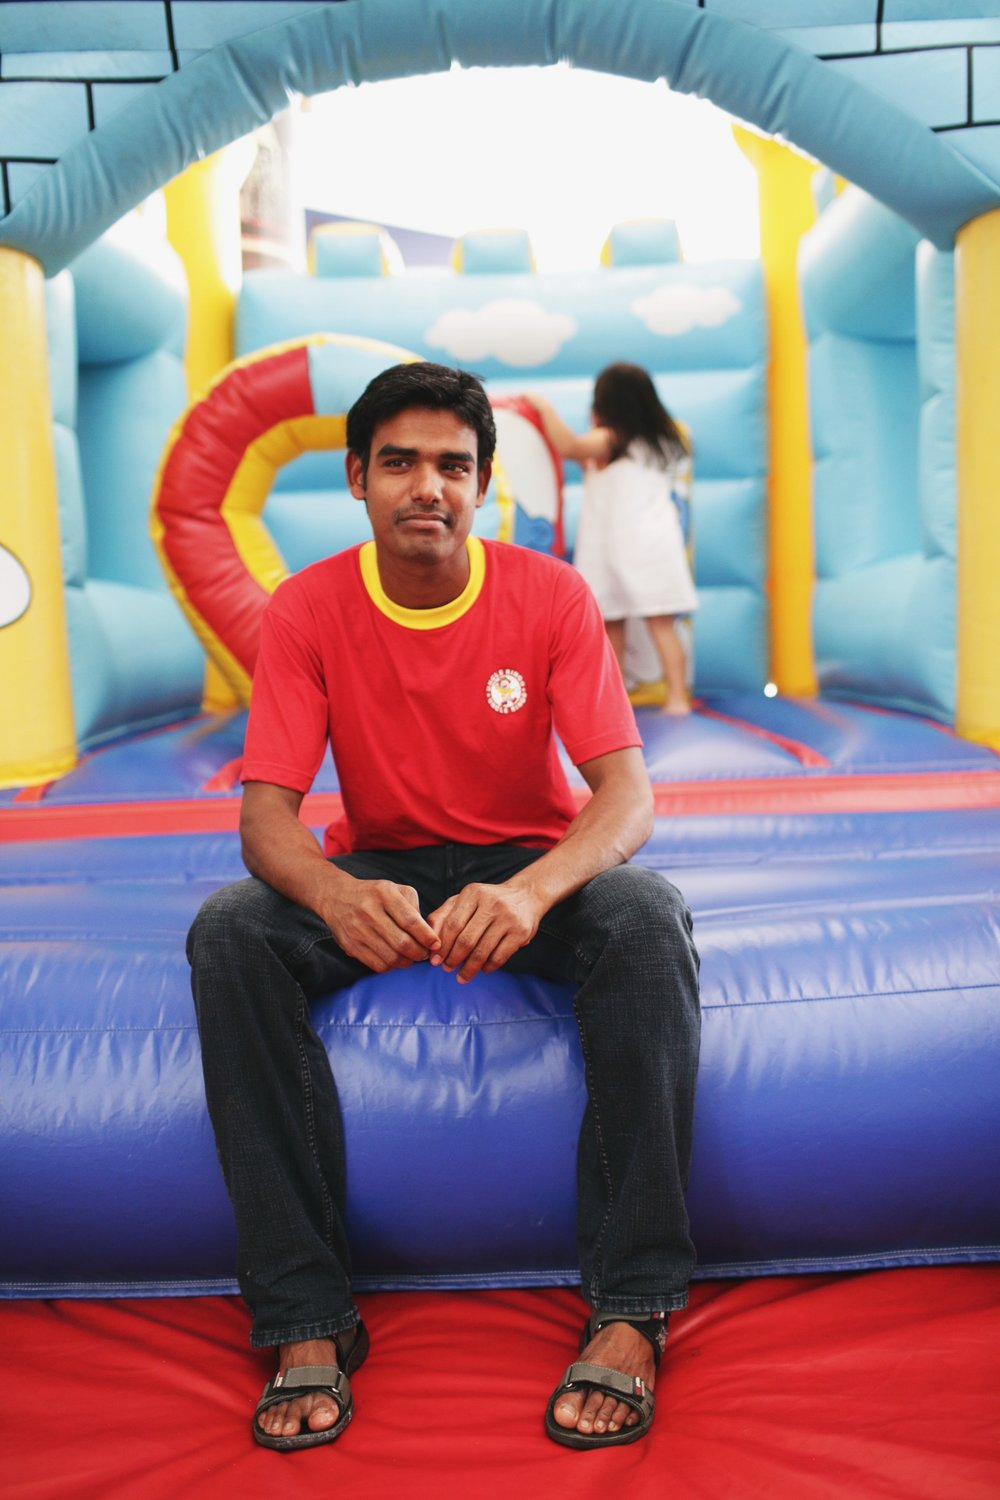 Kumar's from India and has been in Singapore for three years. He loves his job, especially when he gets to do kids' birthday parties with the bouncy castles.